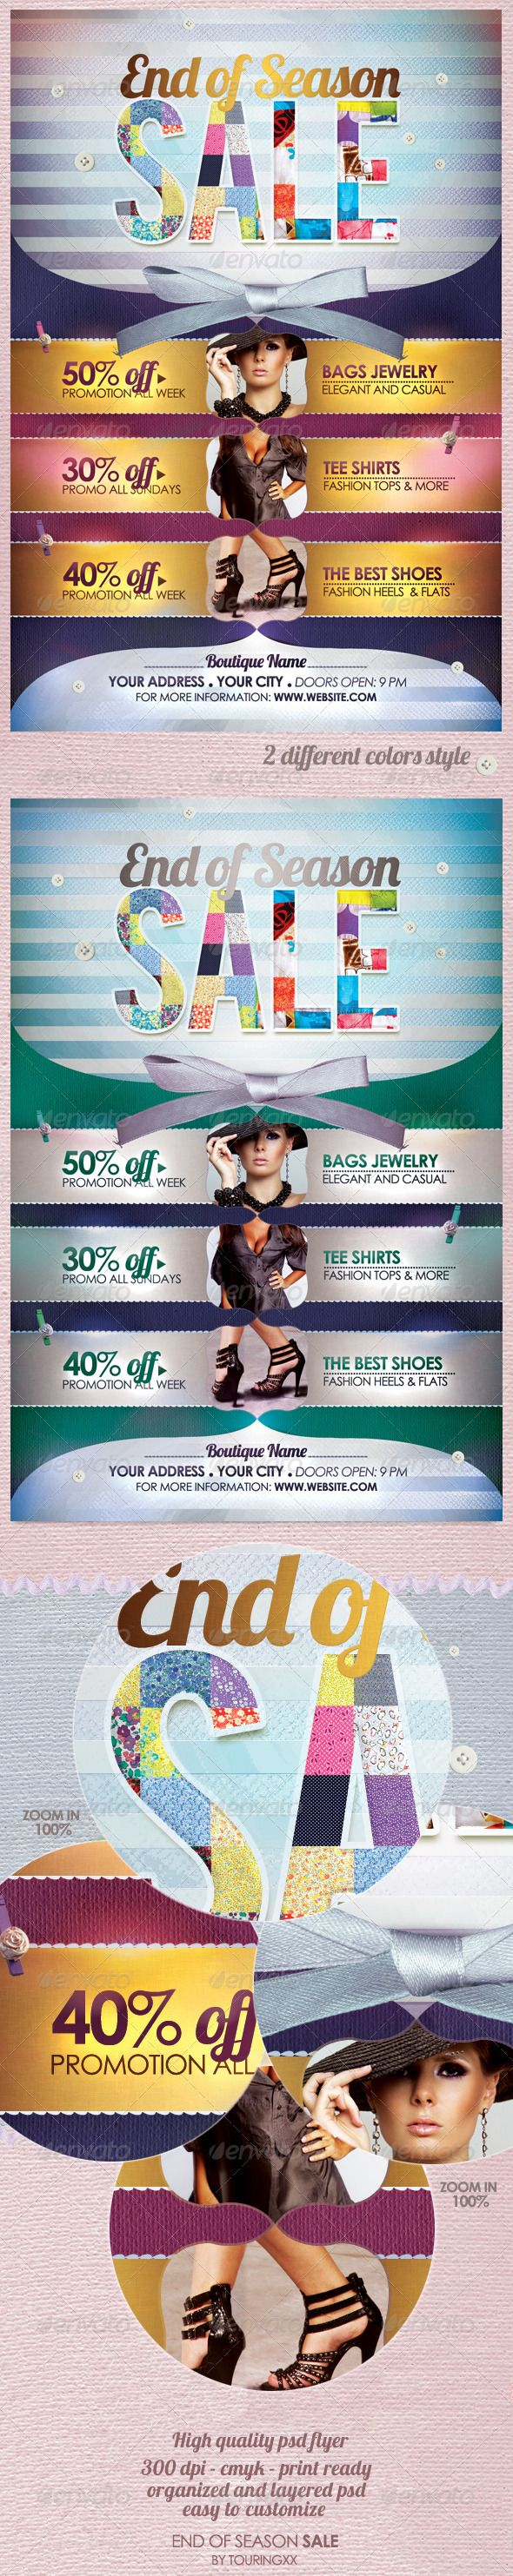 best images about fashion flyers texts 17 best images about fashion flyers texts nightclub and promotion